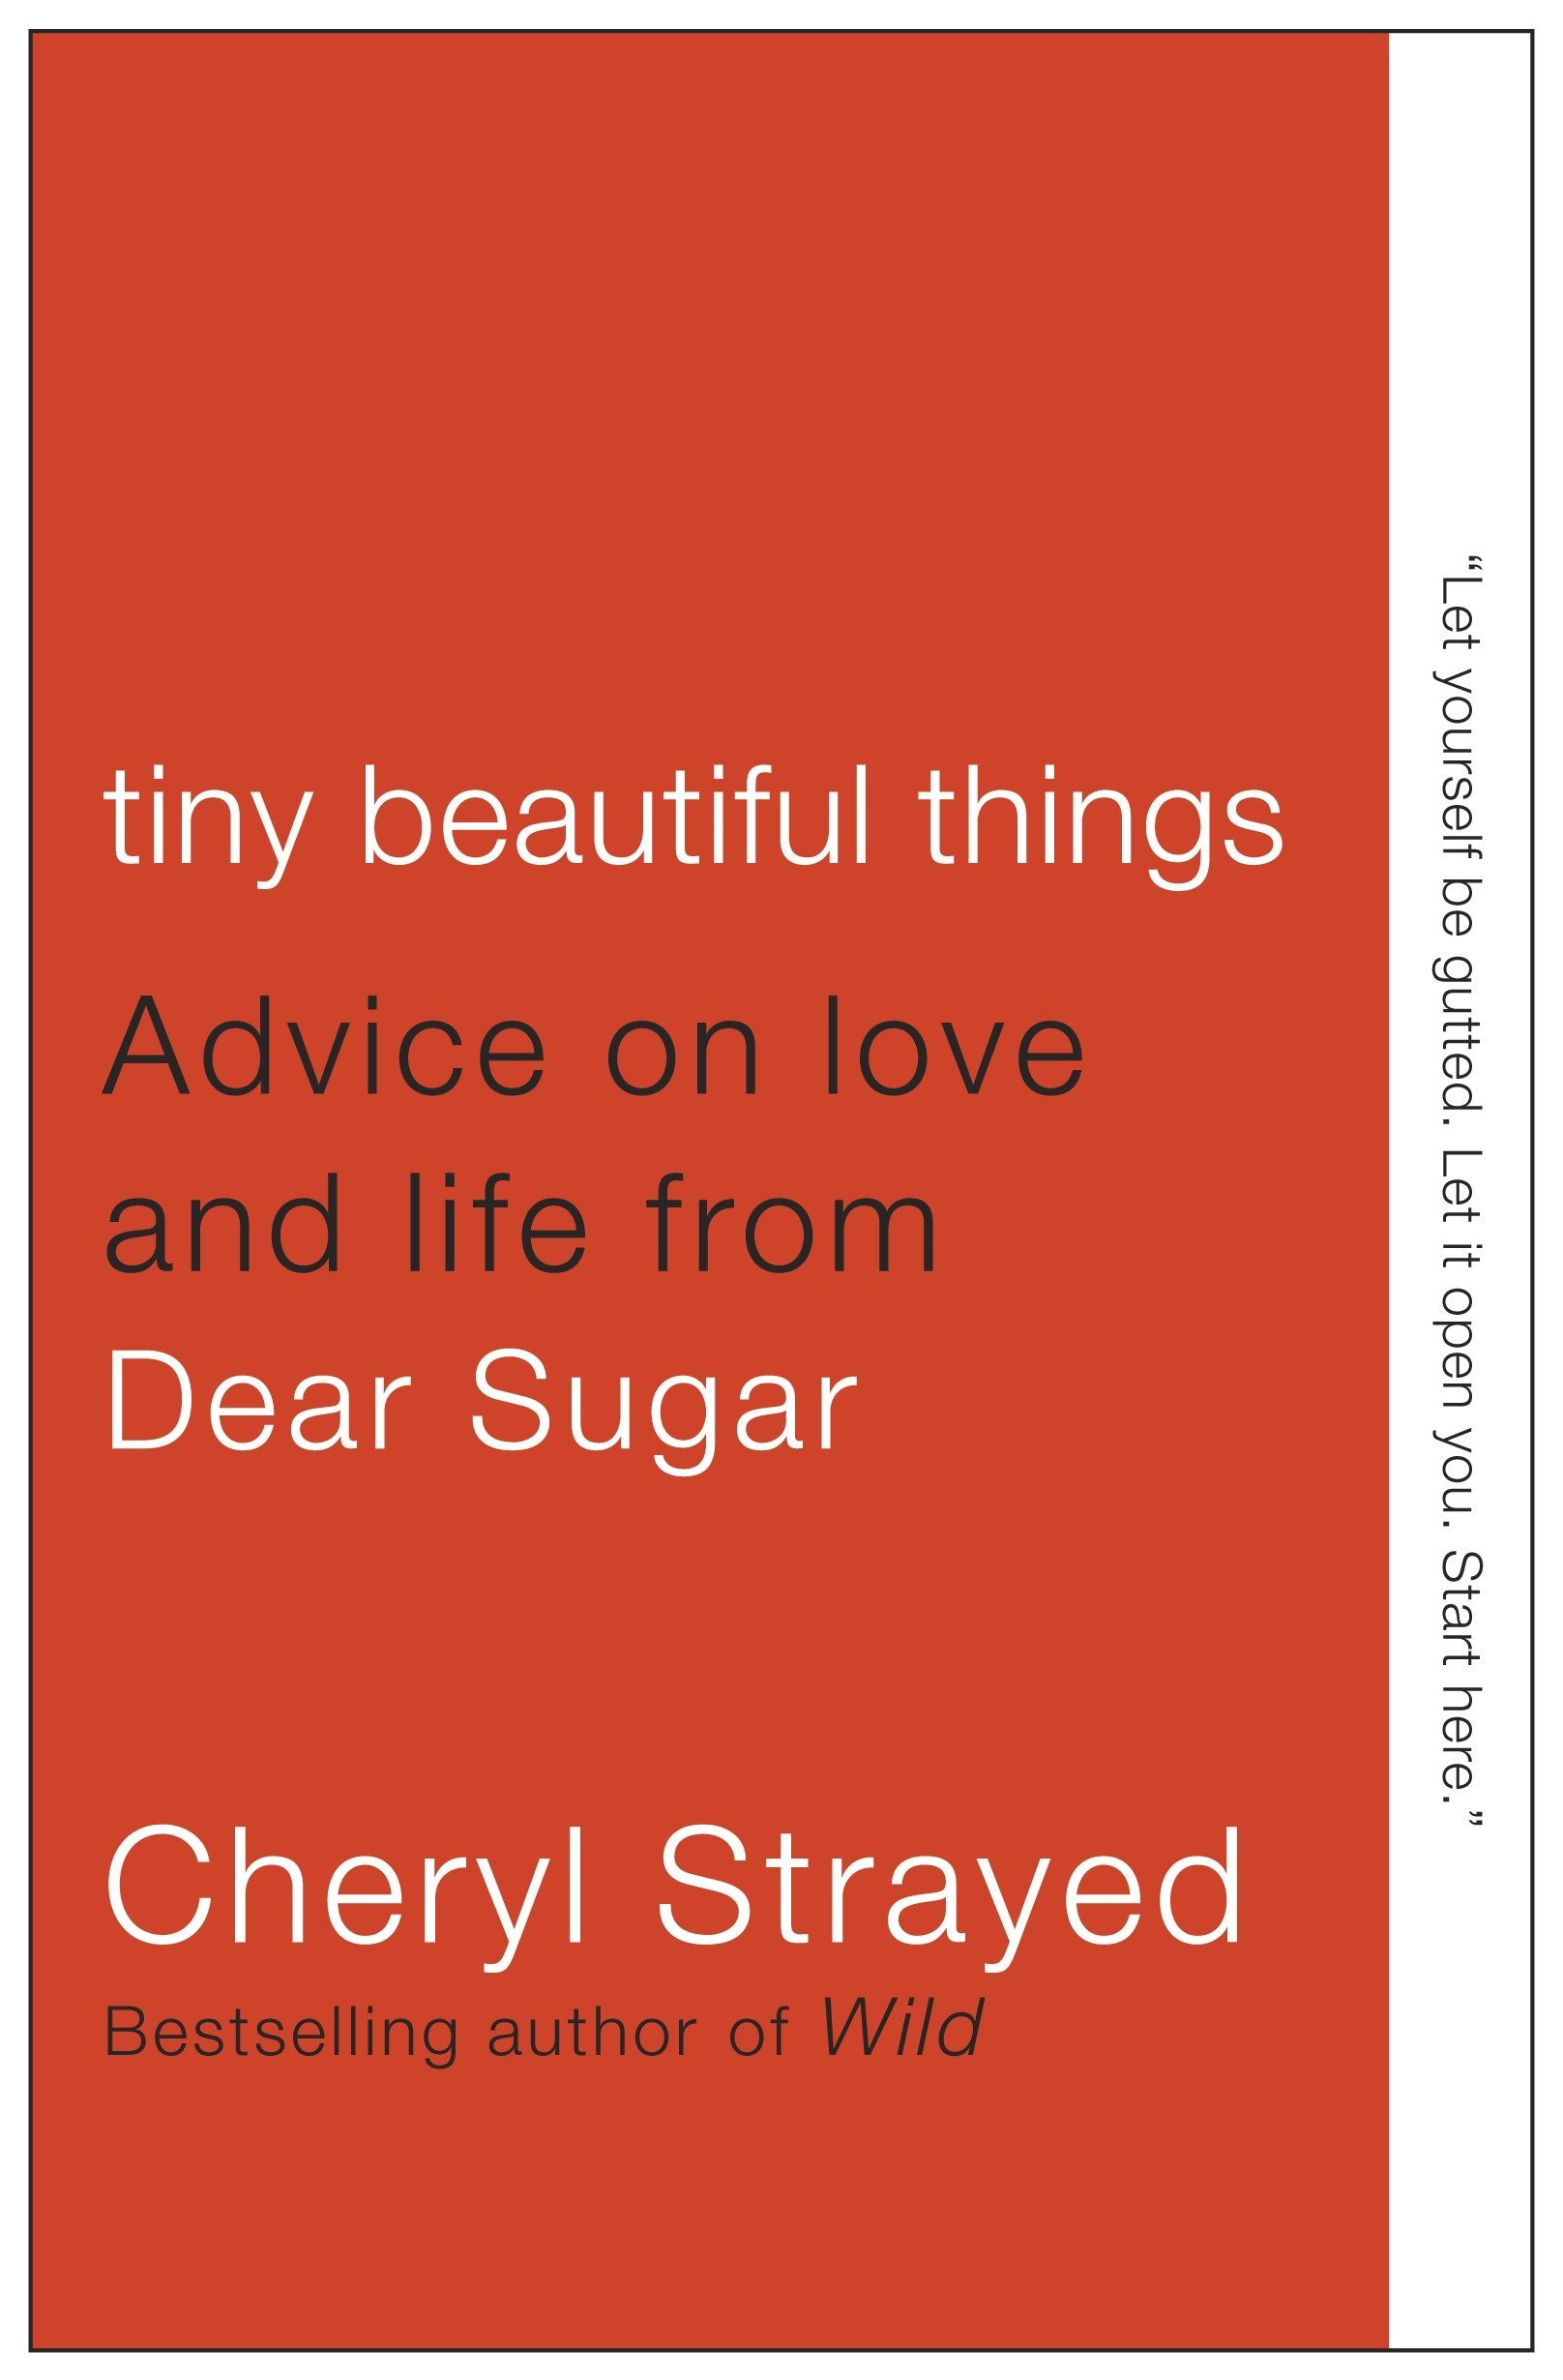 Tiny Beautiful Things, books about self-love